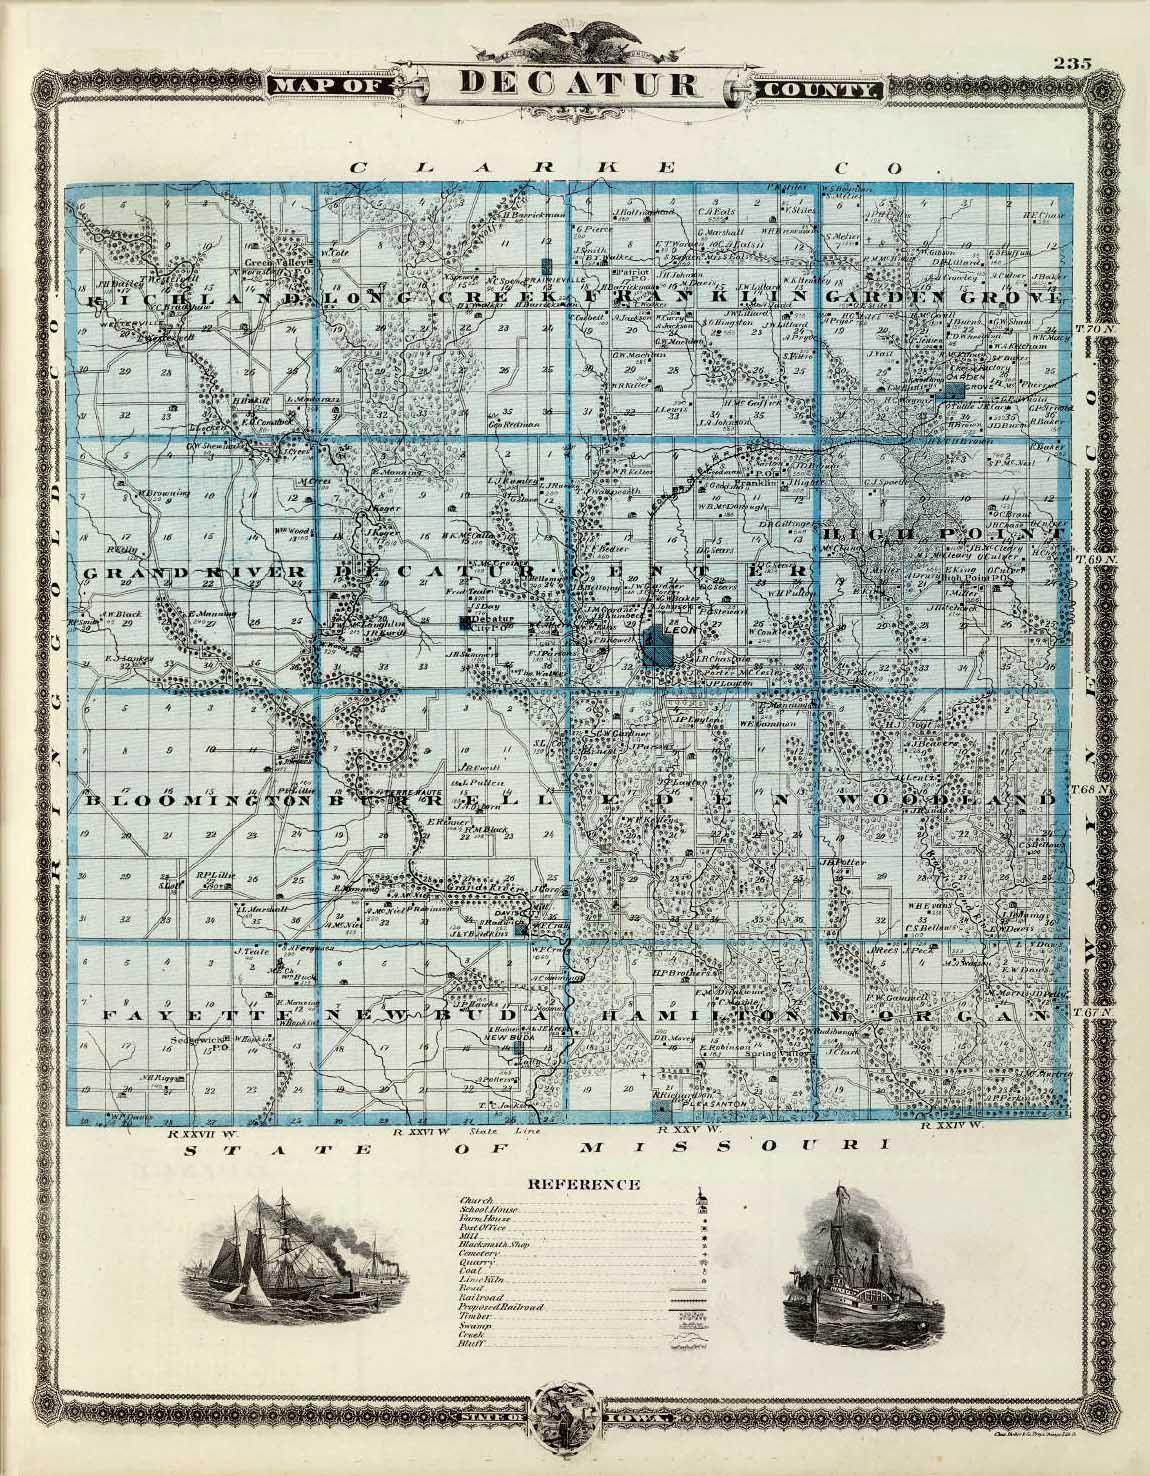 Old Iowa Map.File Ancient Map Of Decatur County Iowa Jpg Wikimedia Commons